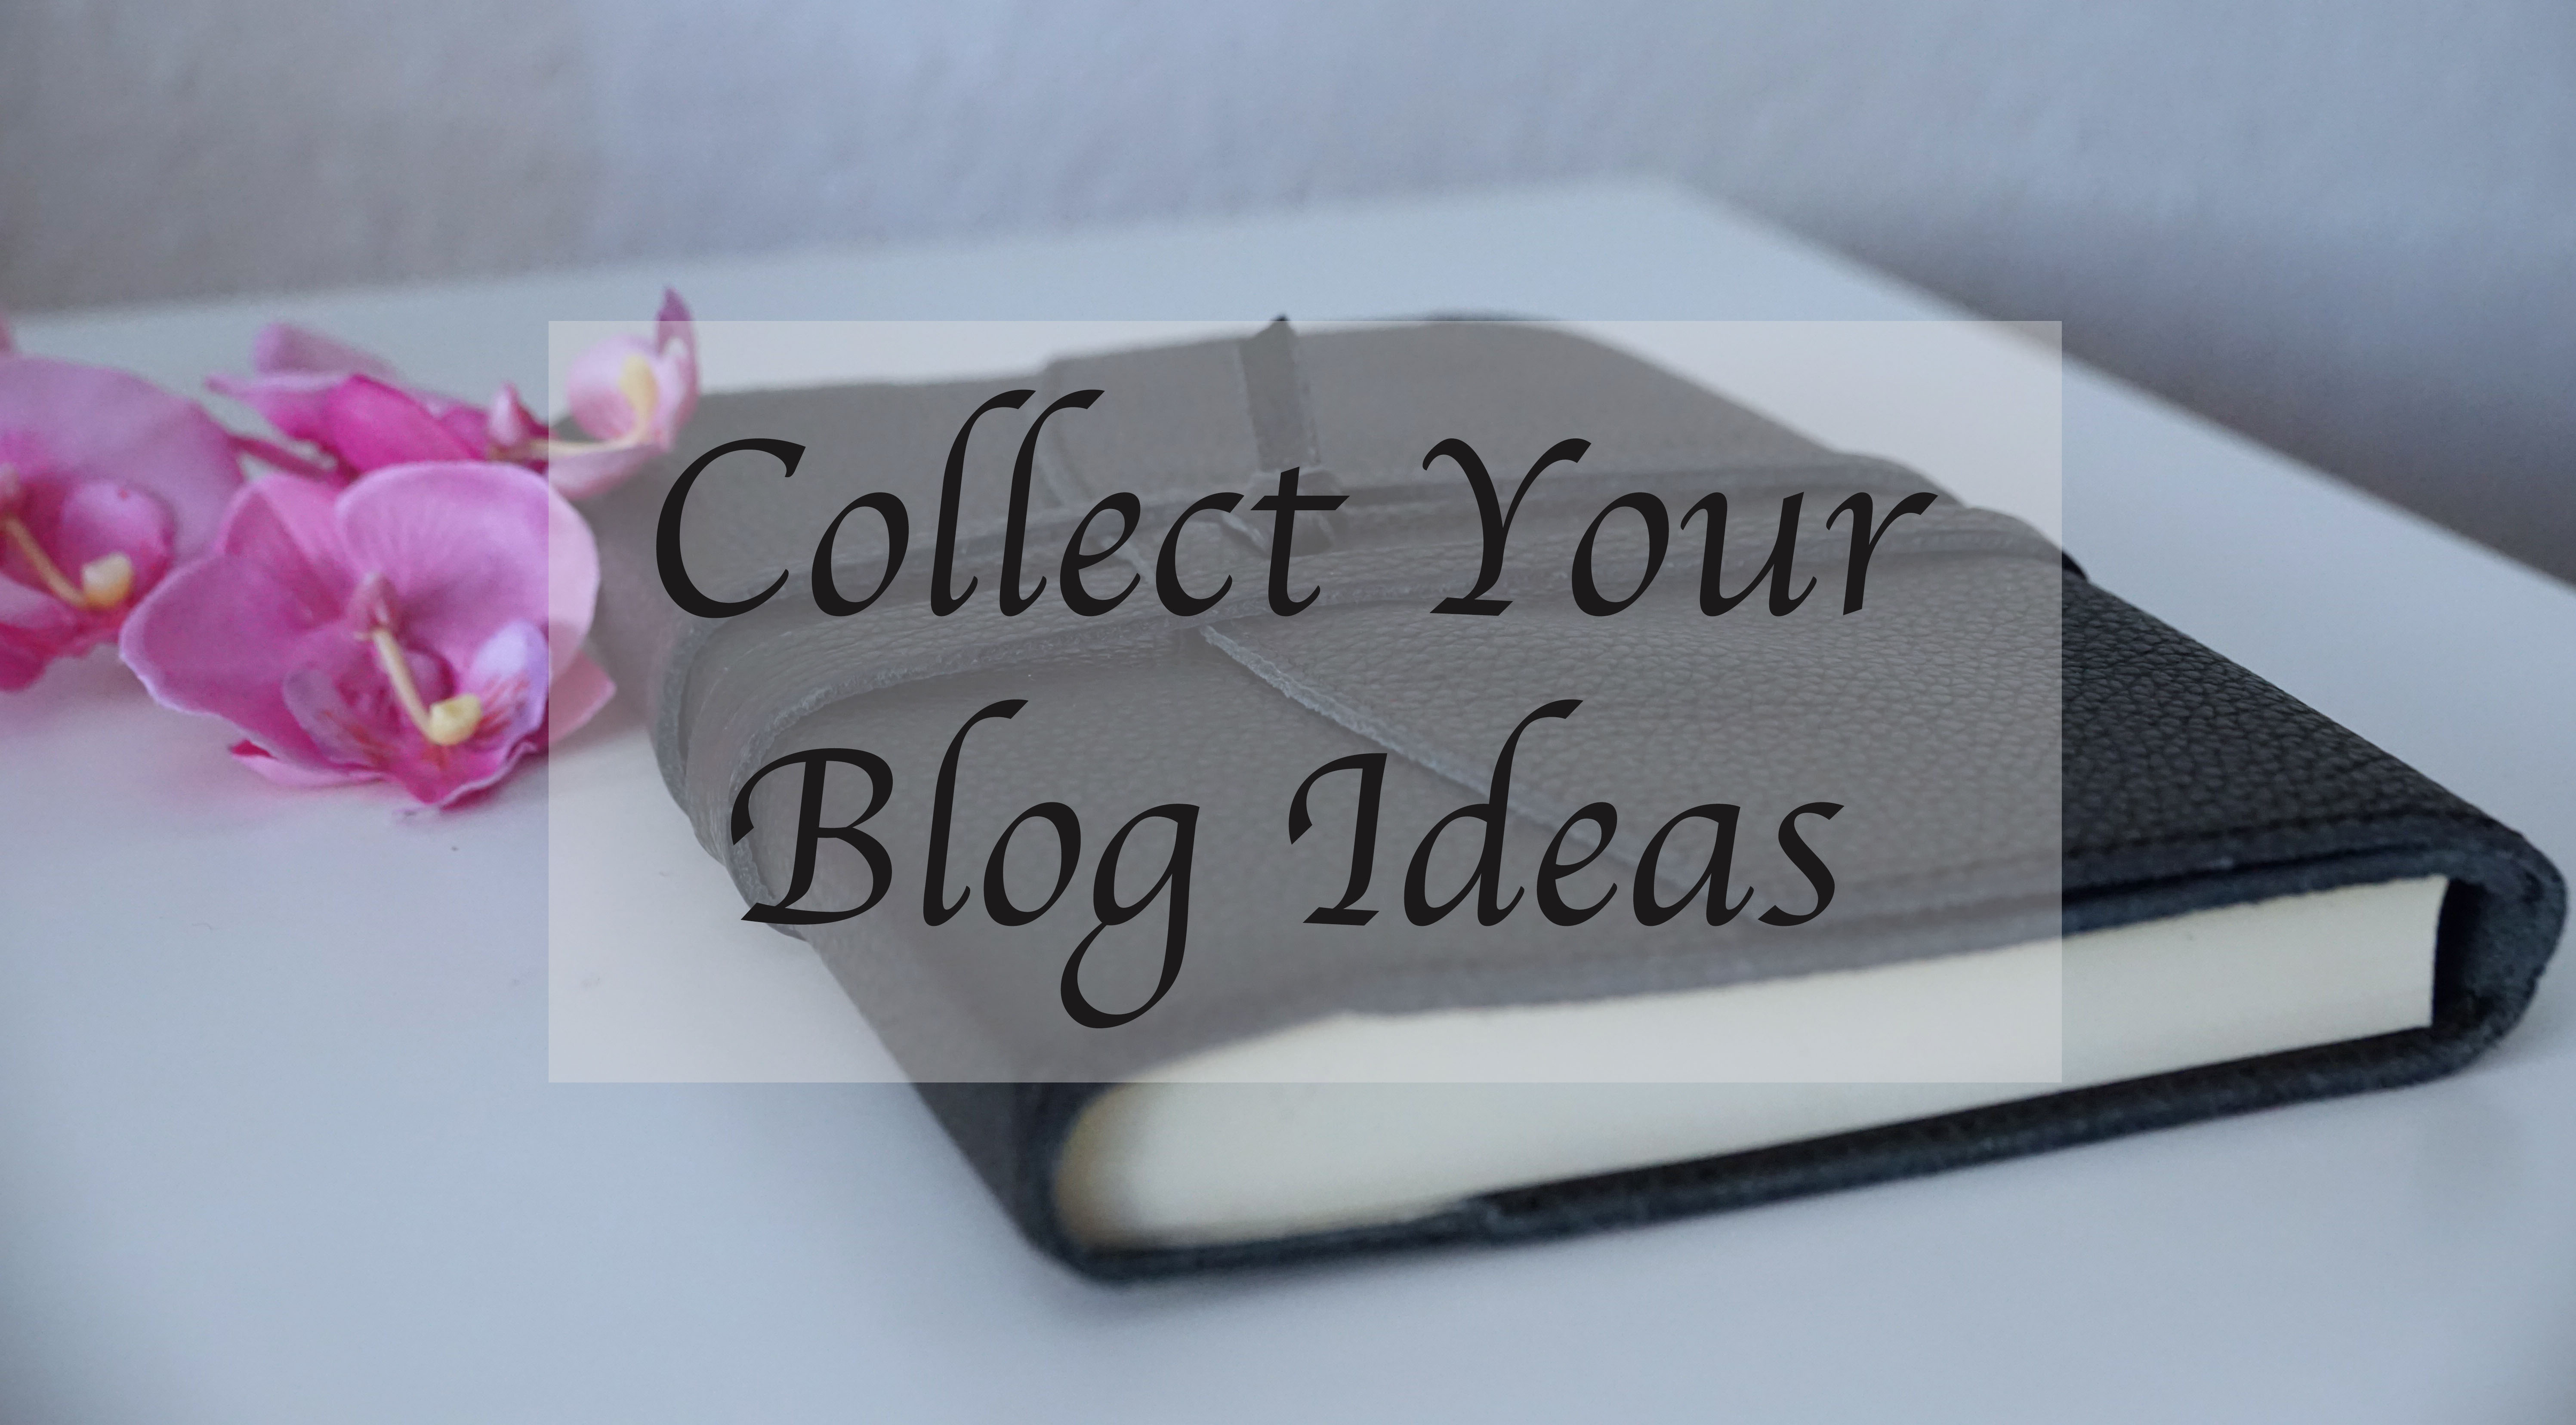 Collect Your Blog Ideas!